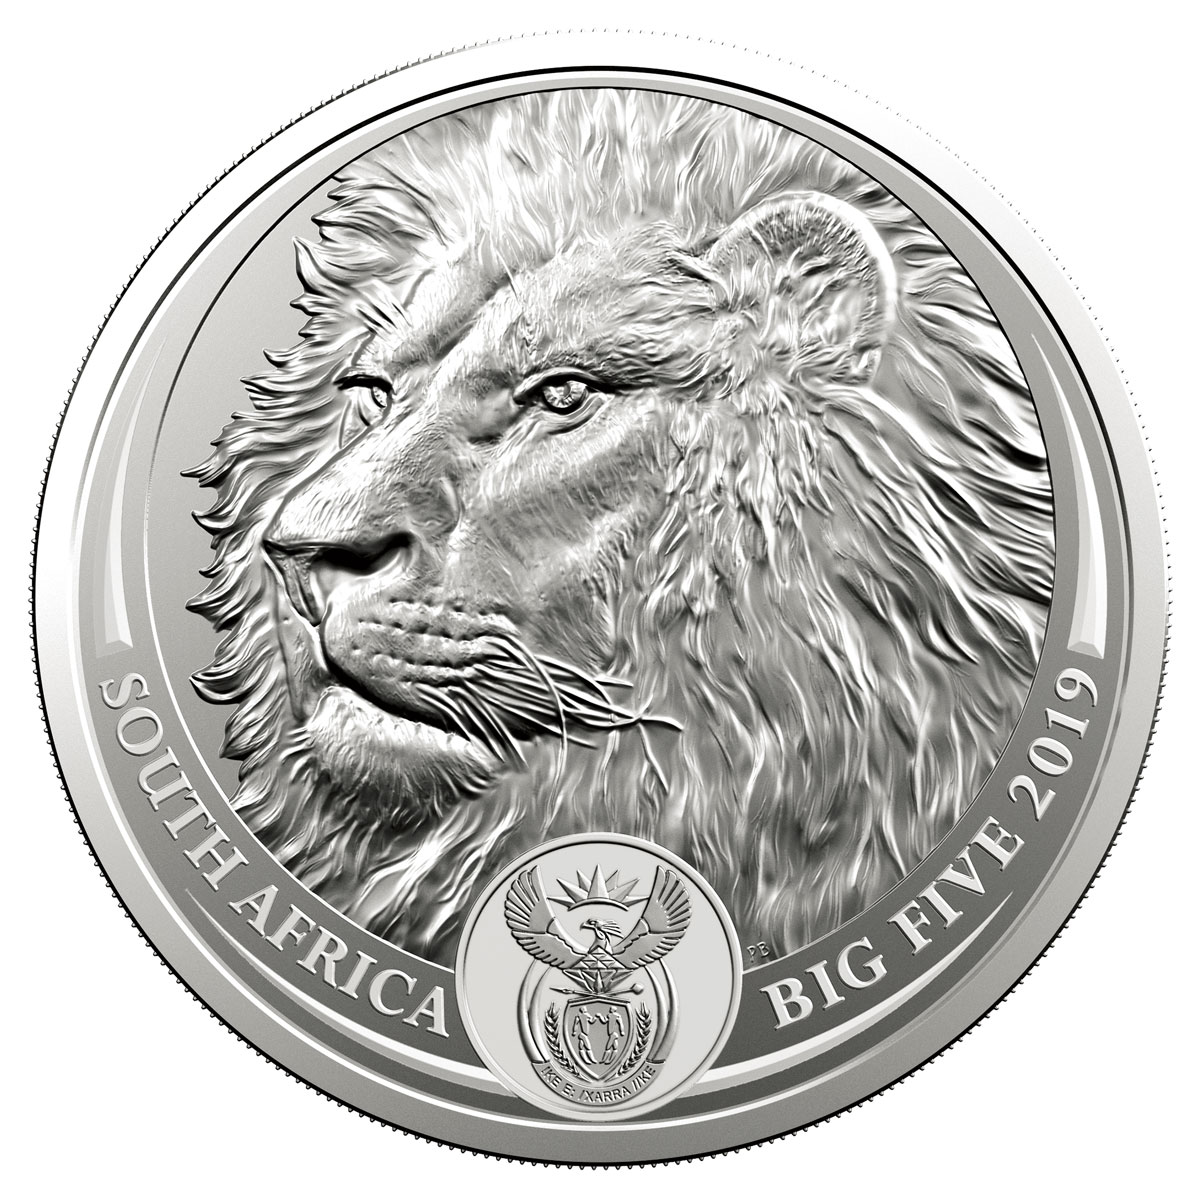 2019 South Africa 1 oz Silver R5 Big 5 Lion GEM BU In Blister Pack